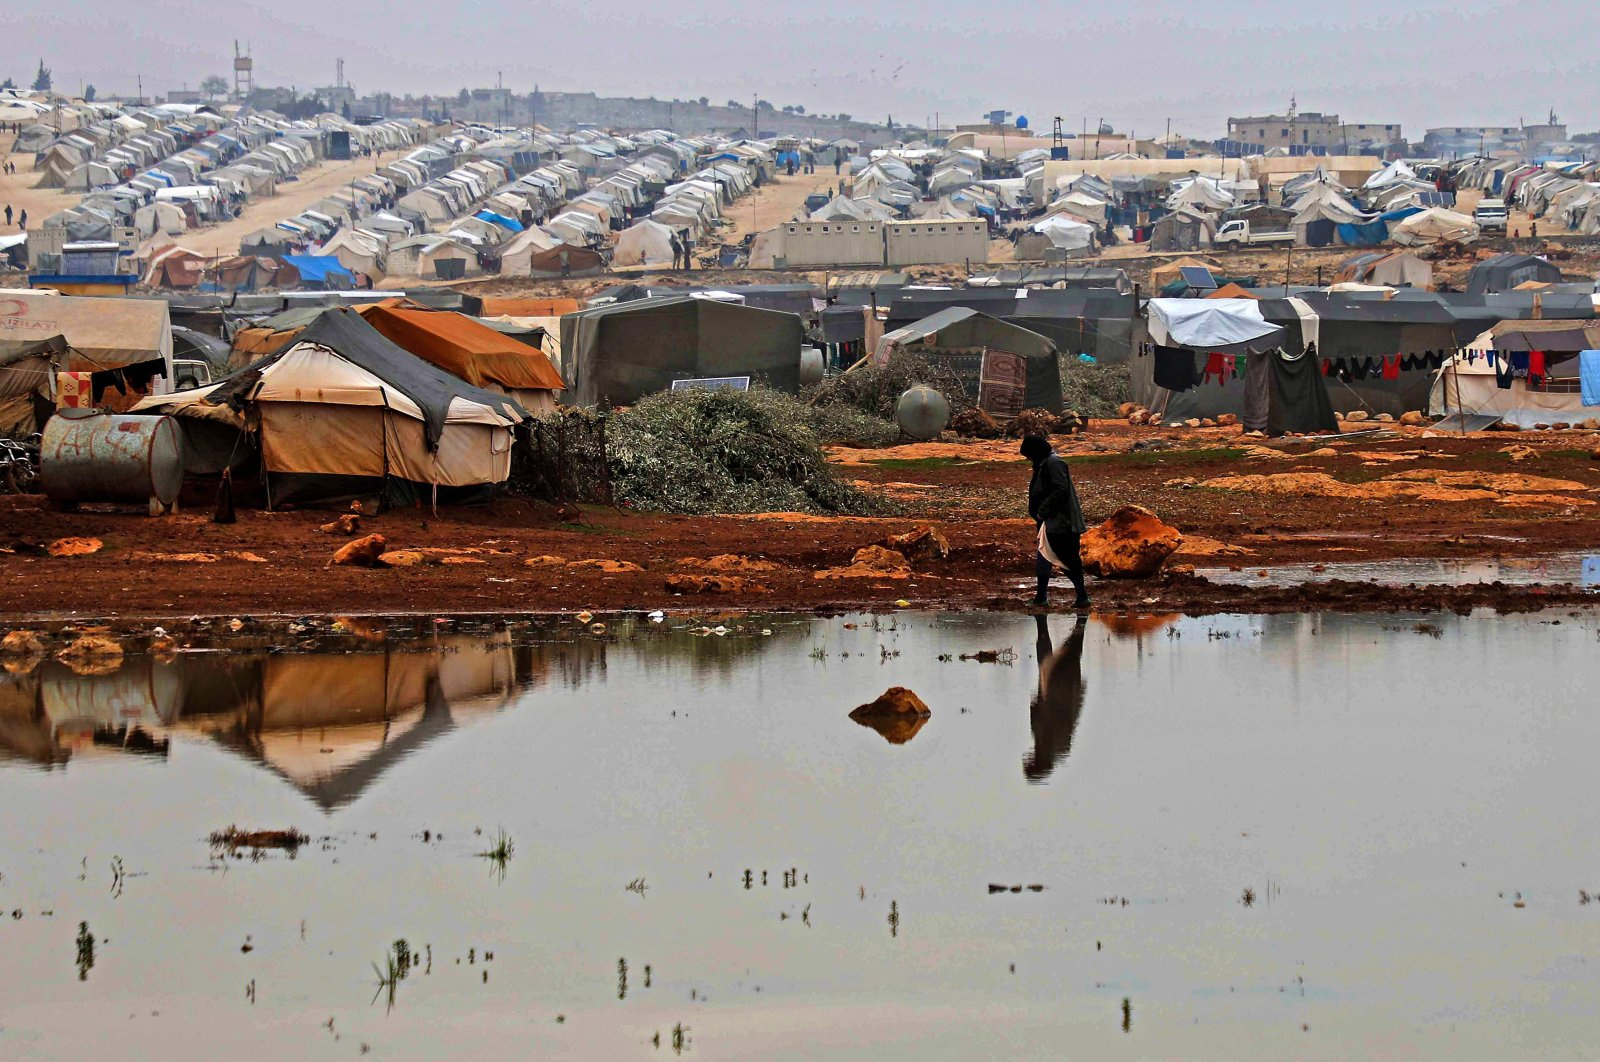 A Syrian woman walks on a flooded patch at a camp for displaced Syrians near the town of Kafr Lusin by the border with Turkey, in Syria's opposition-held northwestern province of Idlib, Dec. 15, 2020. (AFP Photo)